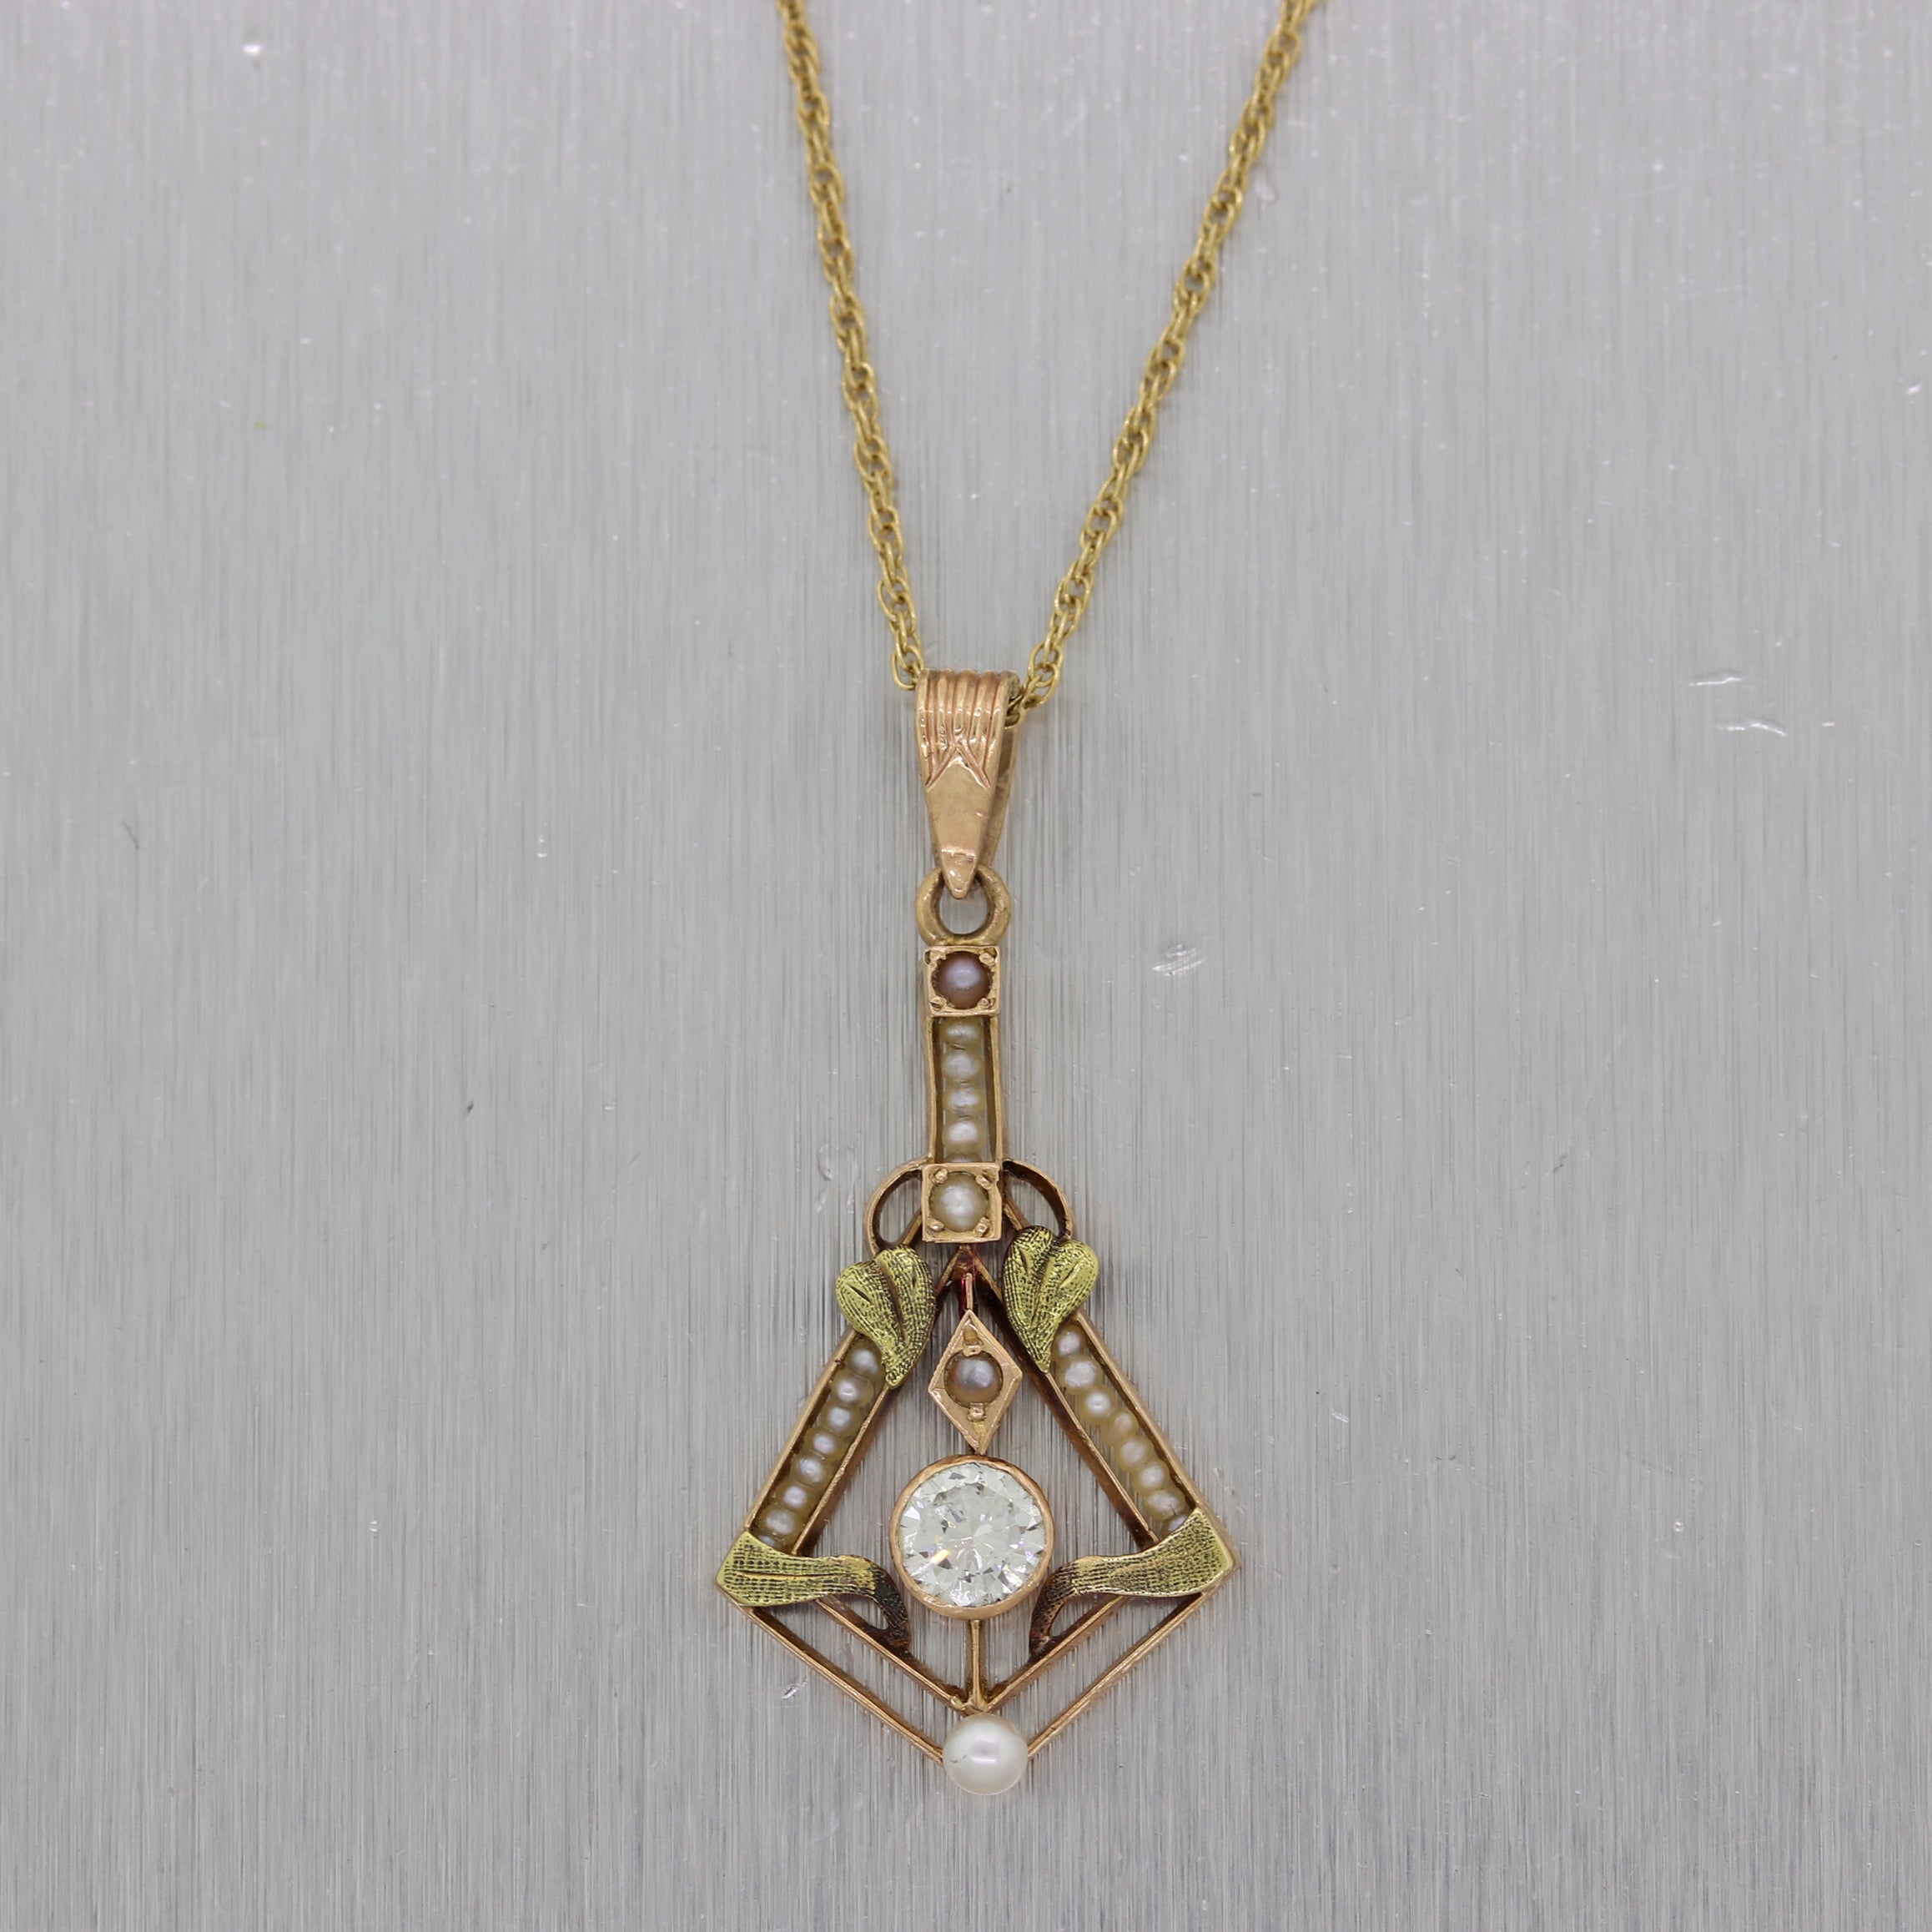 "1890s Antique Victorian 14k Yellow Gold 0.33ct Diamond & Seed Pearl 16"" Necklace"